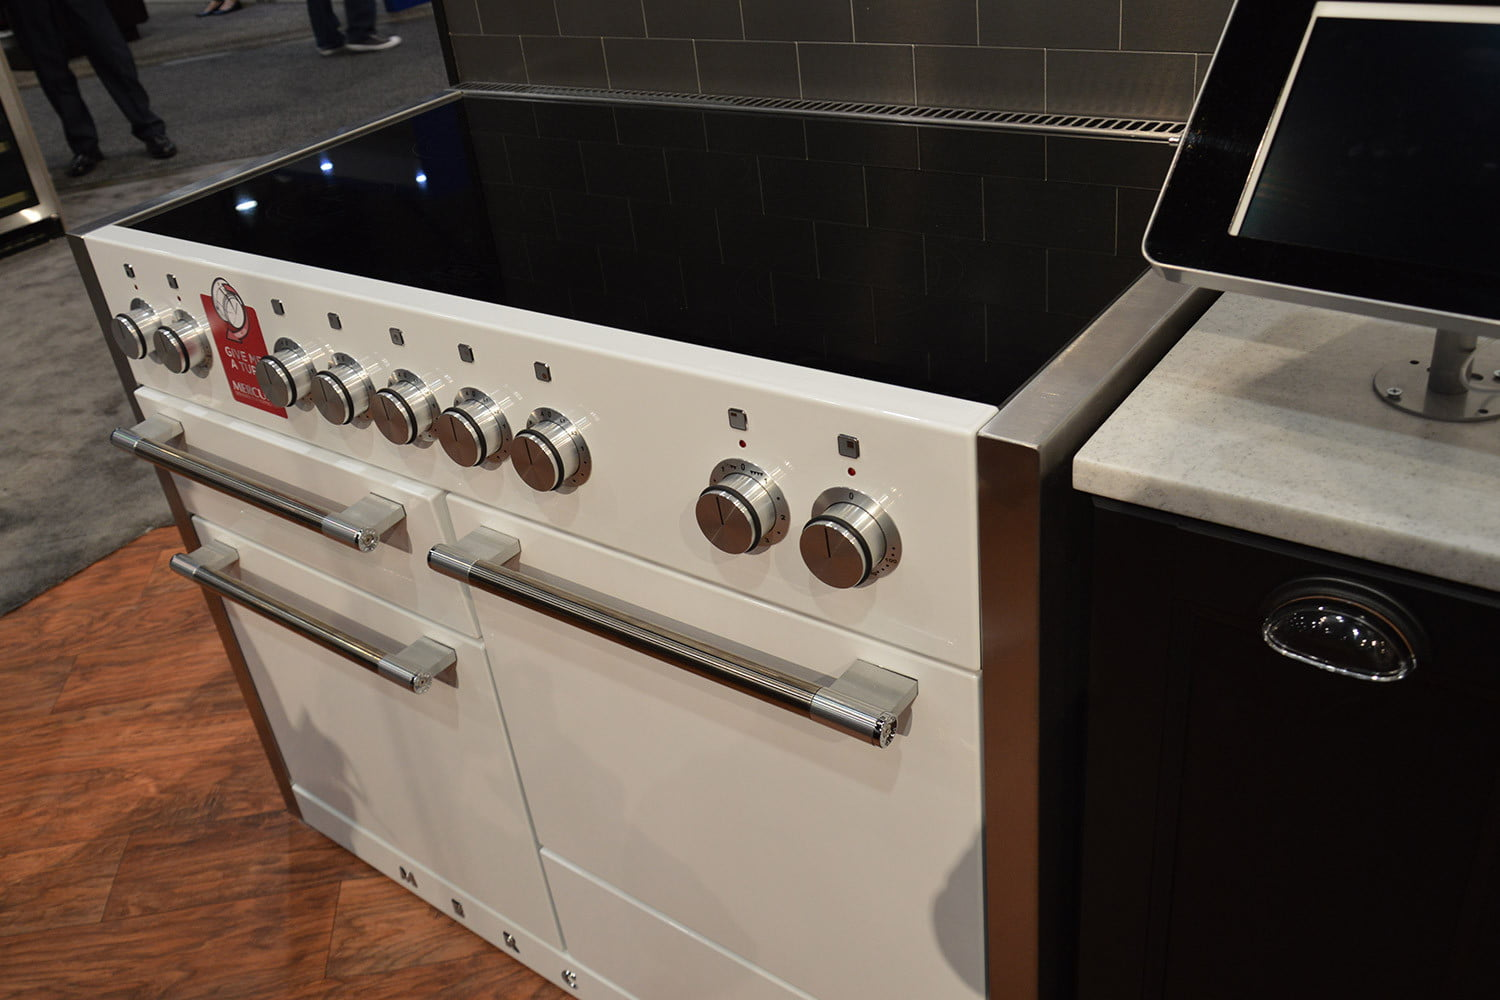 Agas Mercury Oven Will Have A 48 Inch Induction Cooktop